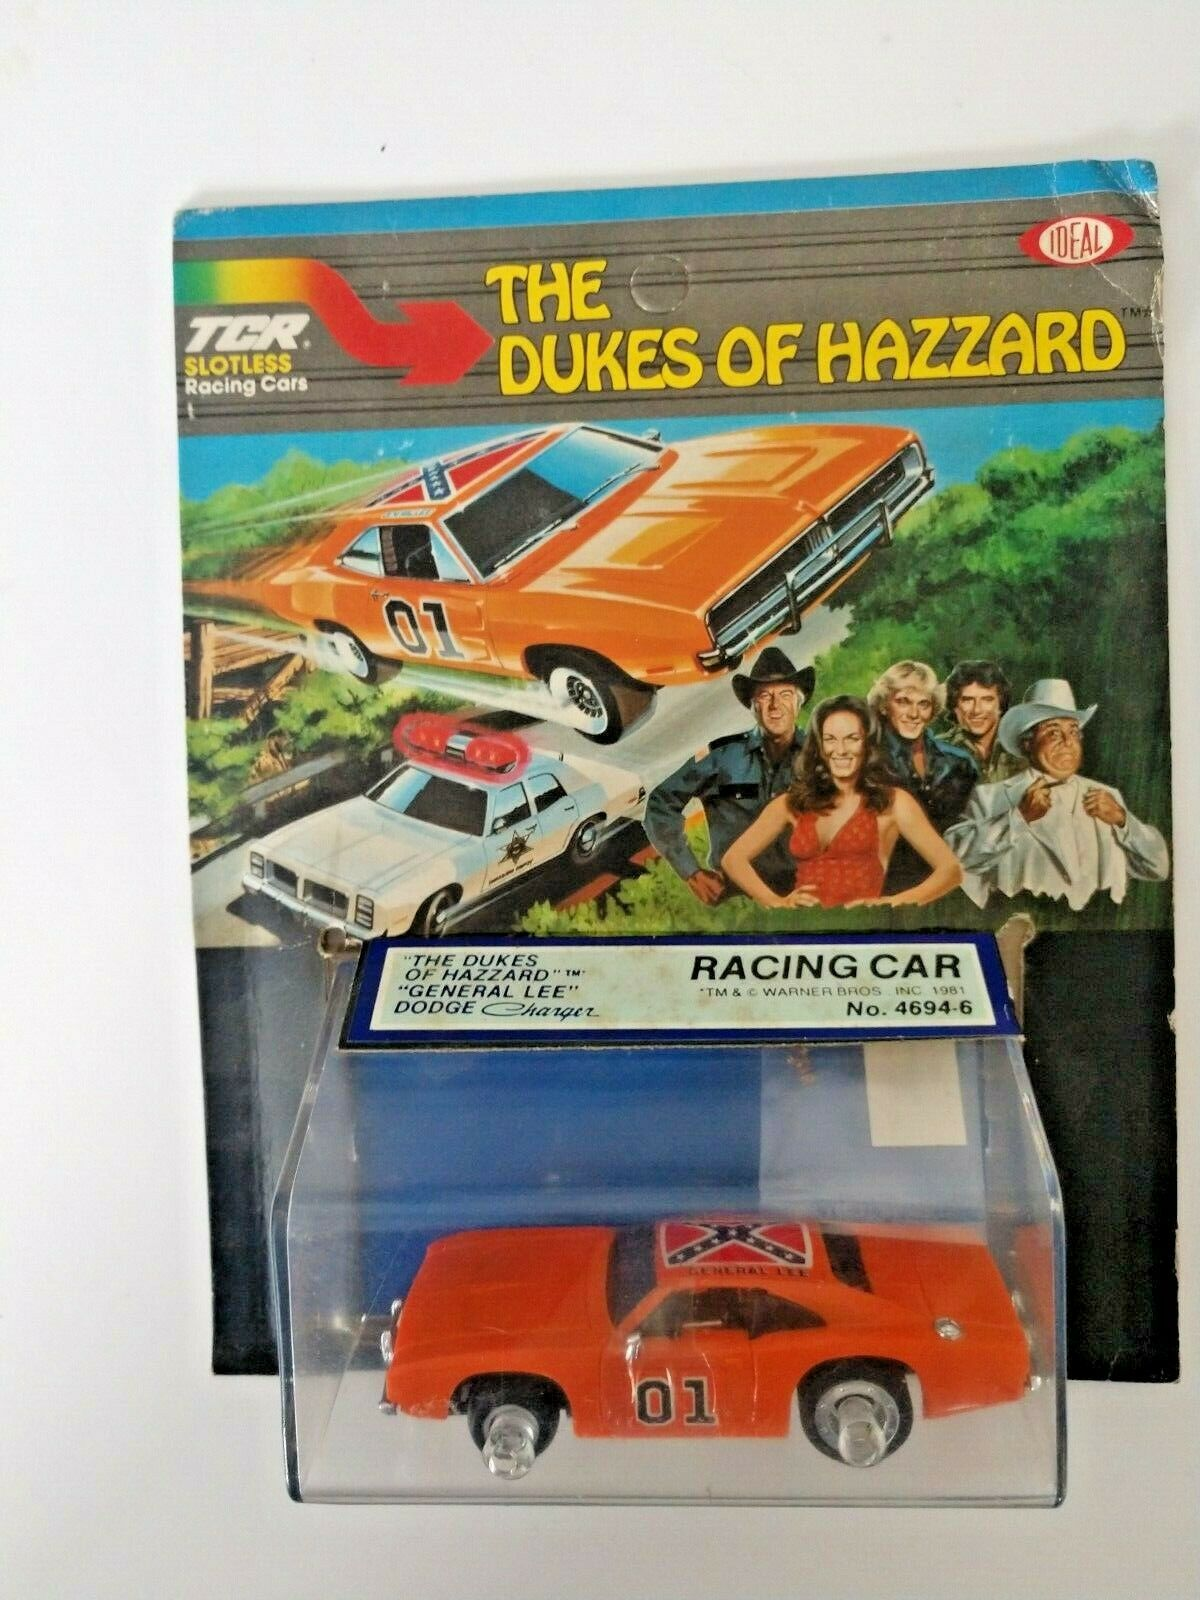 IDEAL TOY THE DUKES OF HAZZARD GENERAL LEE SLOTLESS RACING CAR  4694-6 UNPUNCHED